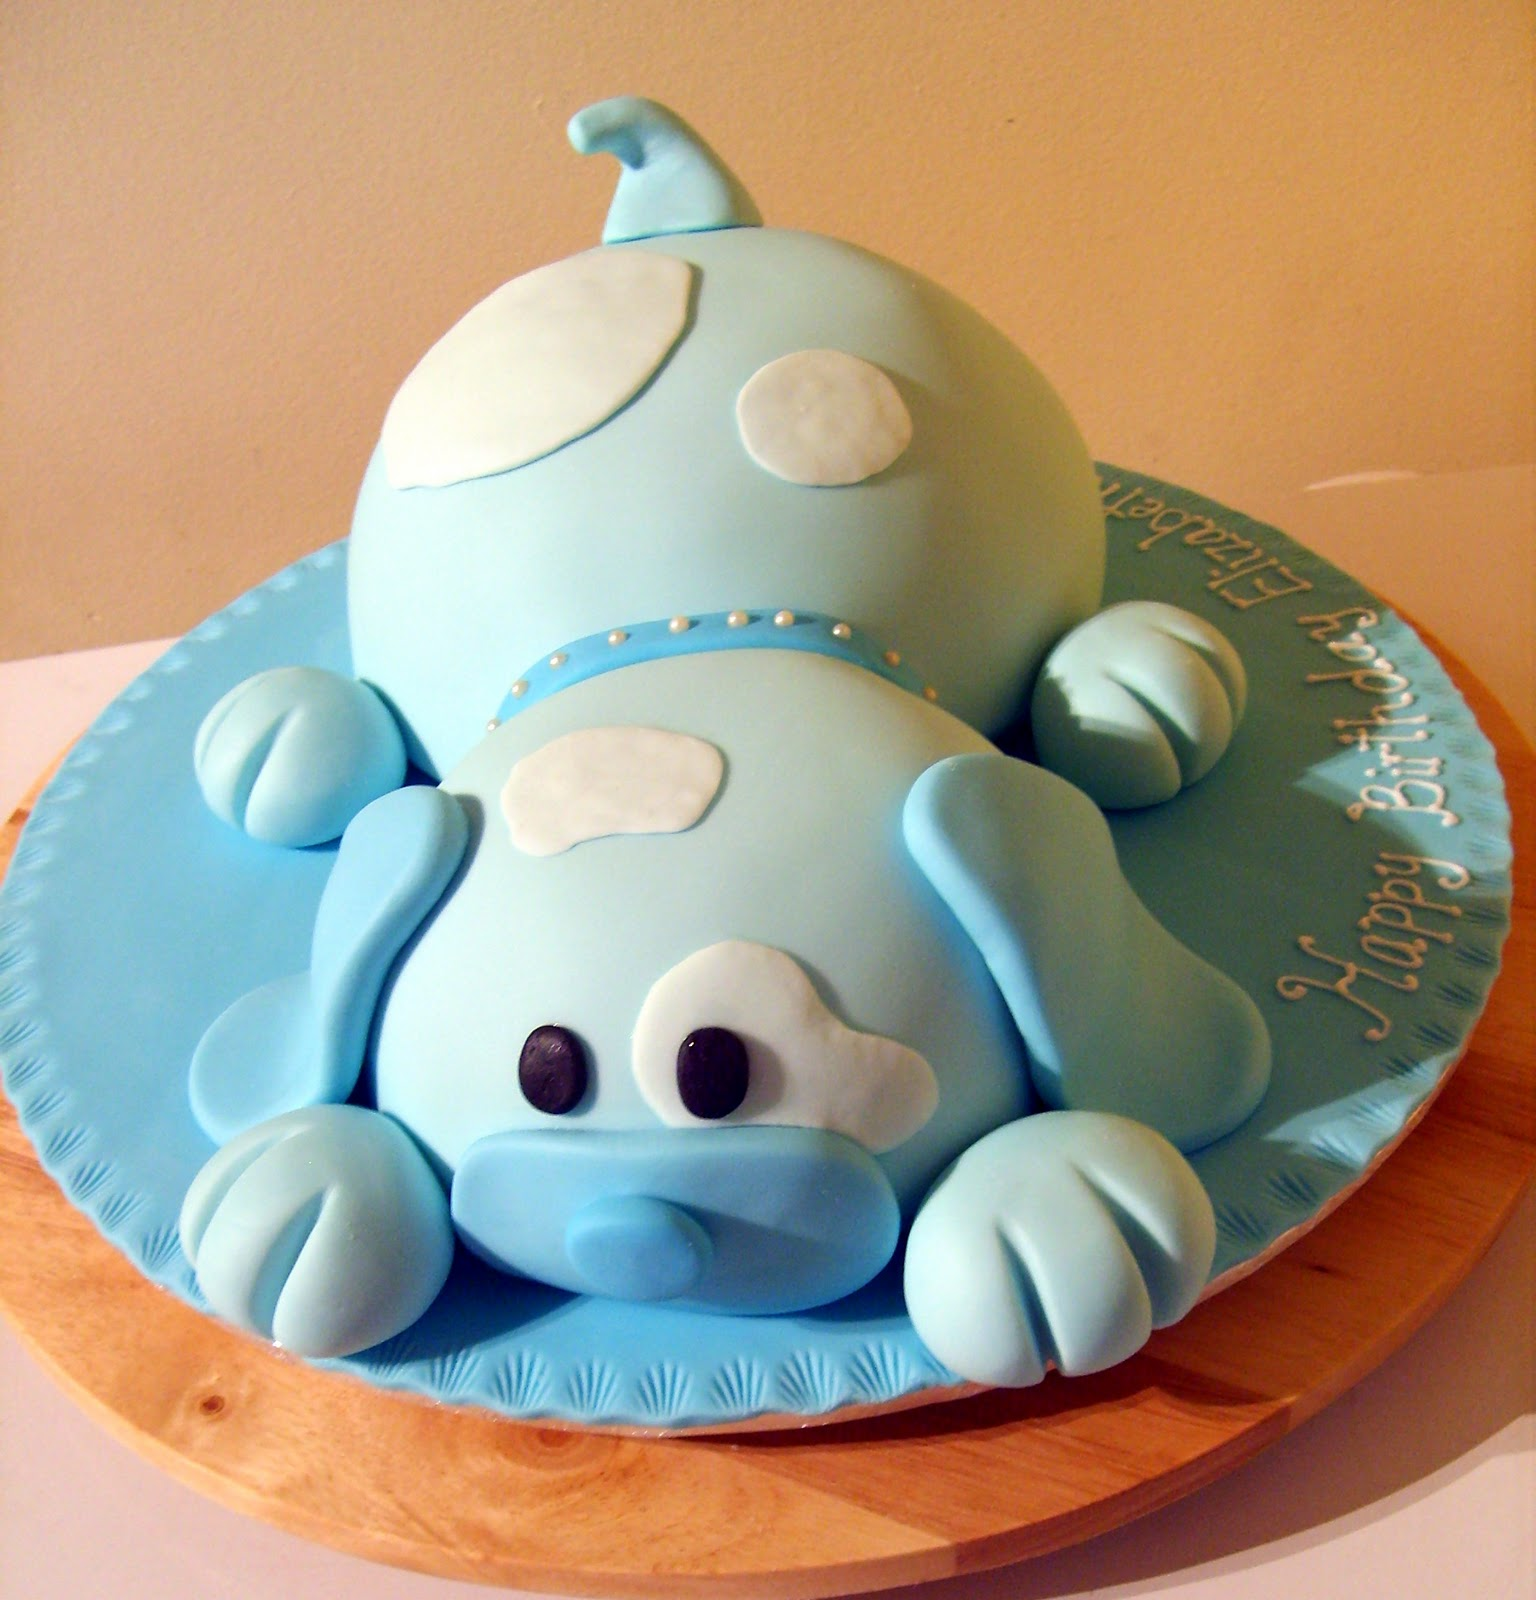 Pictures of Dog Cakes http://caketopia.blogspot.com/2010/12/puppy-dog-birthday-cake-for-elizabeth.html